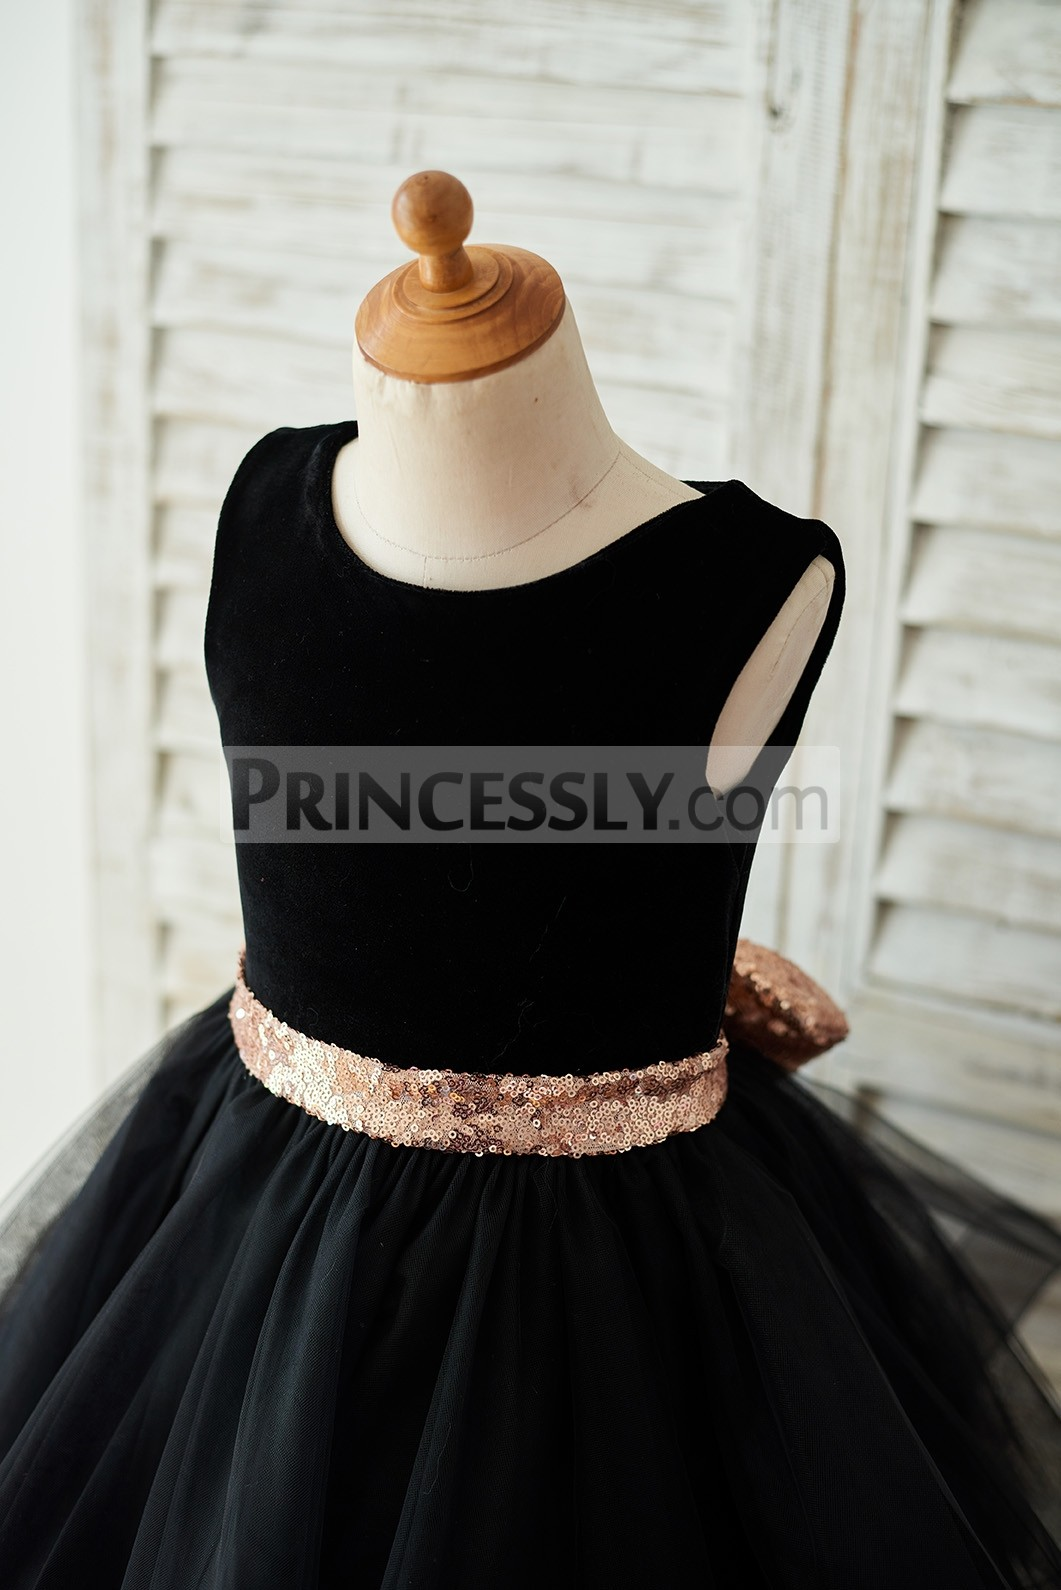 Black velvet bodice with gold sequined belt and bow